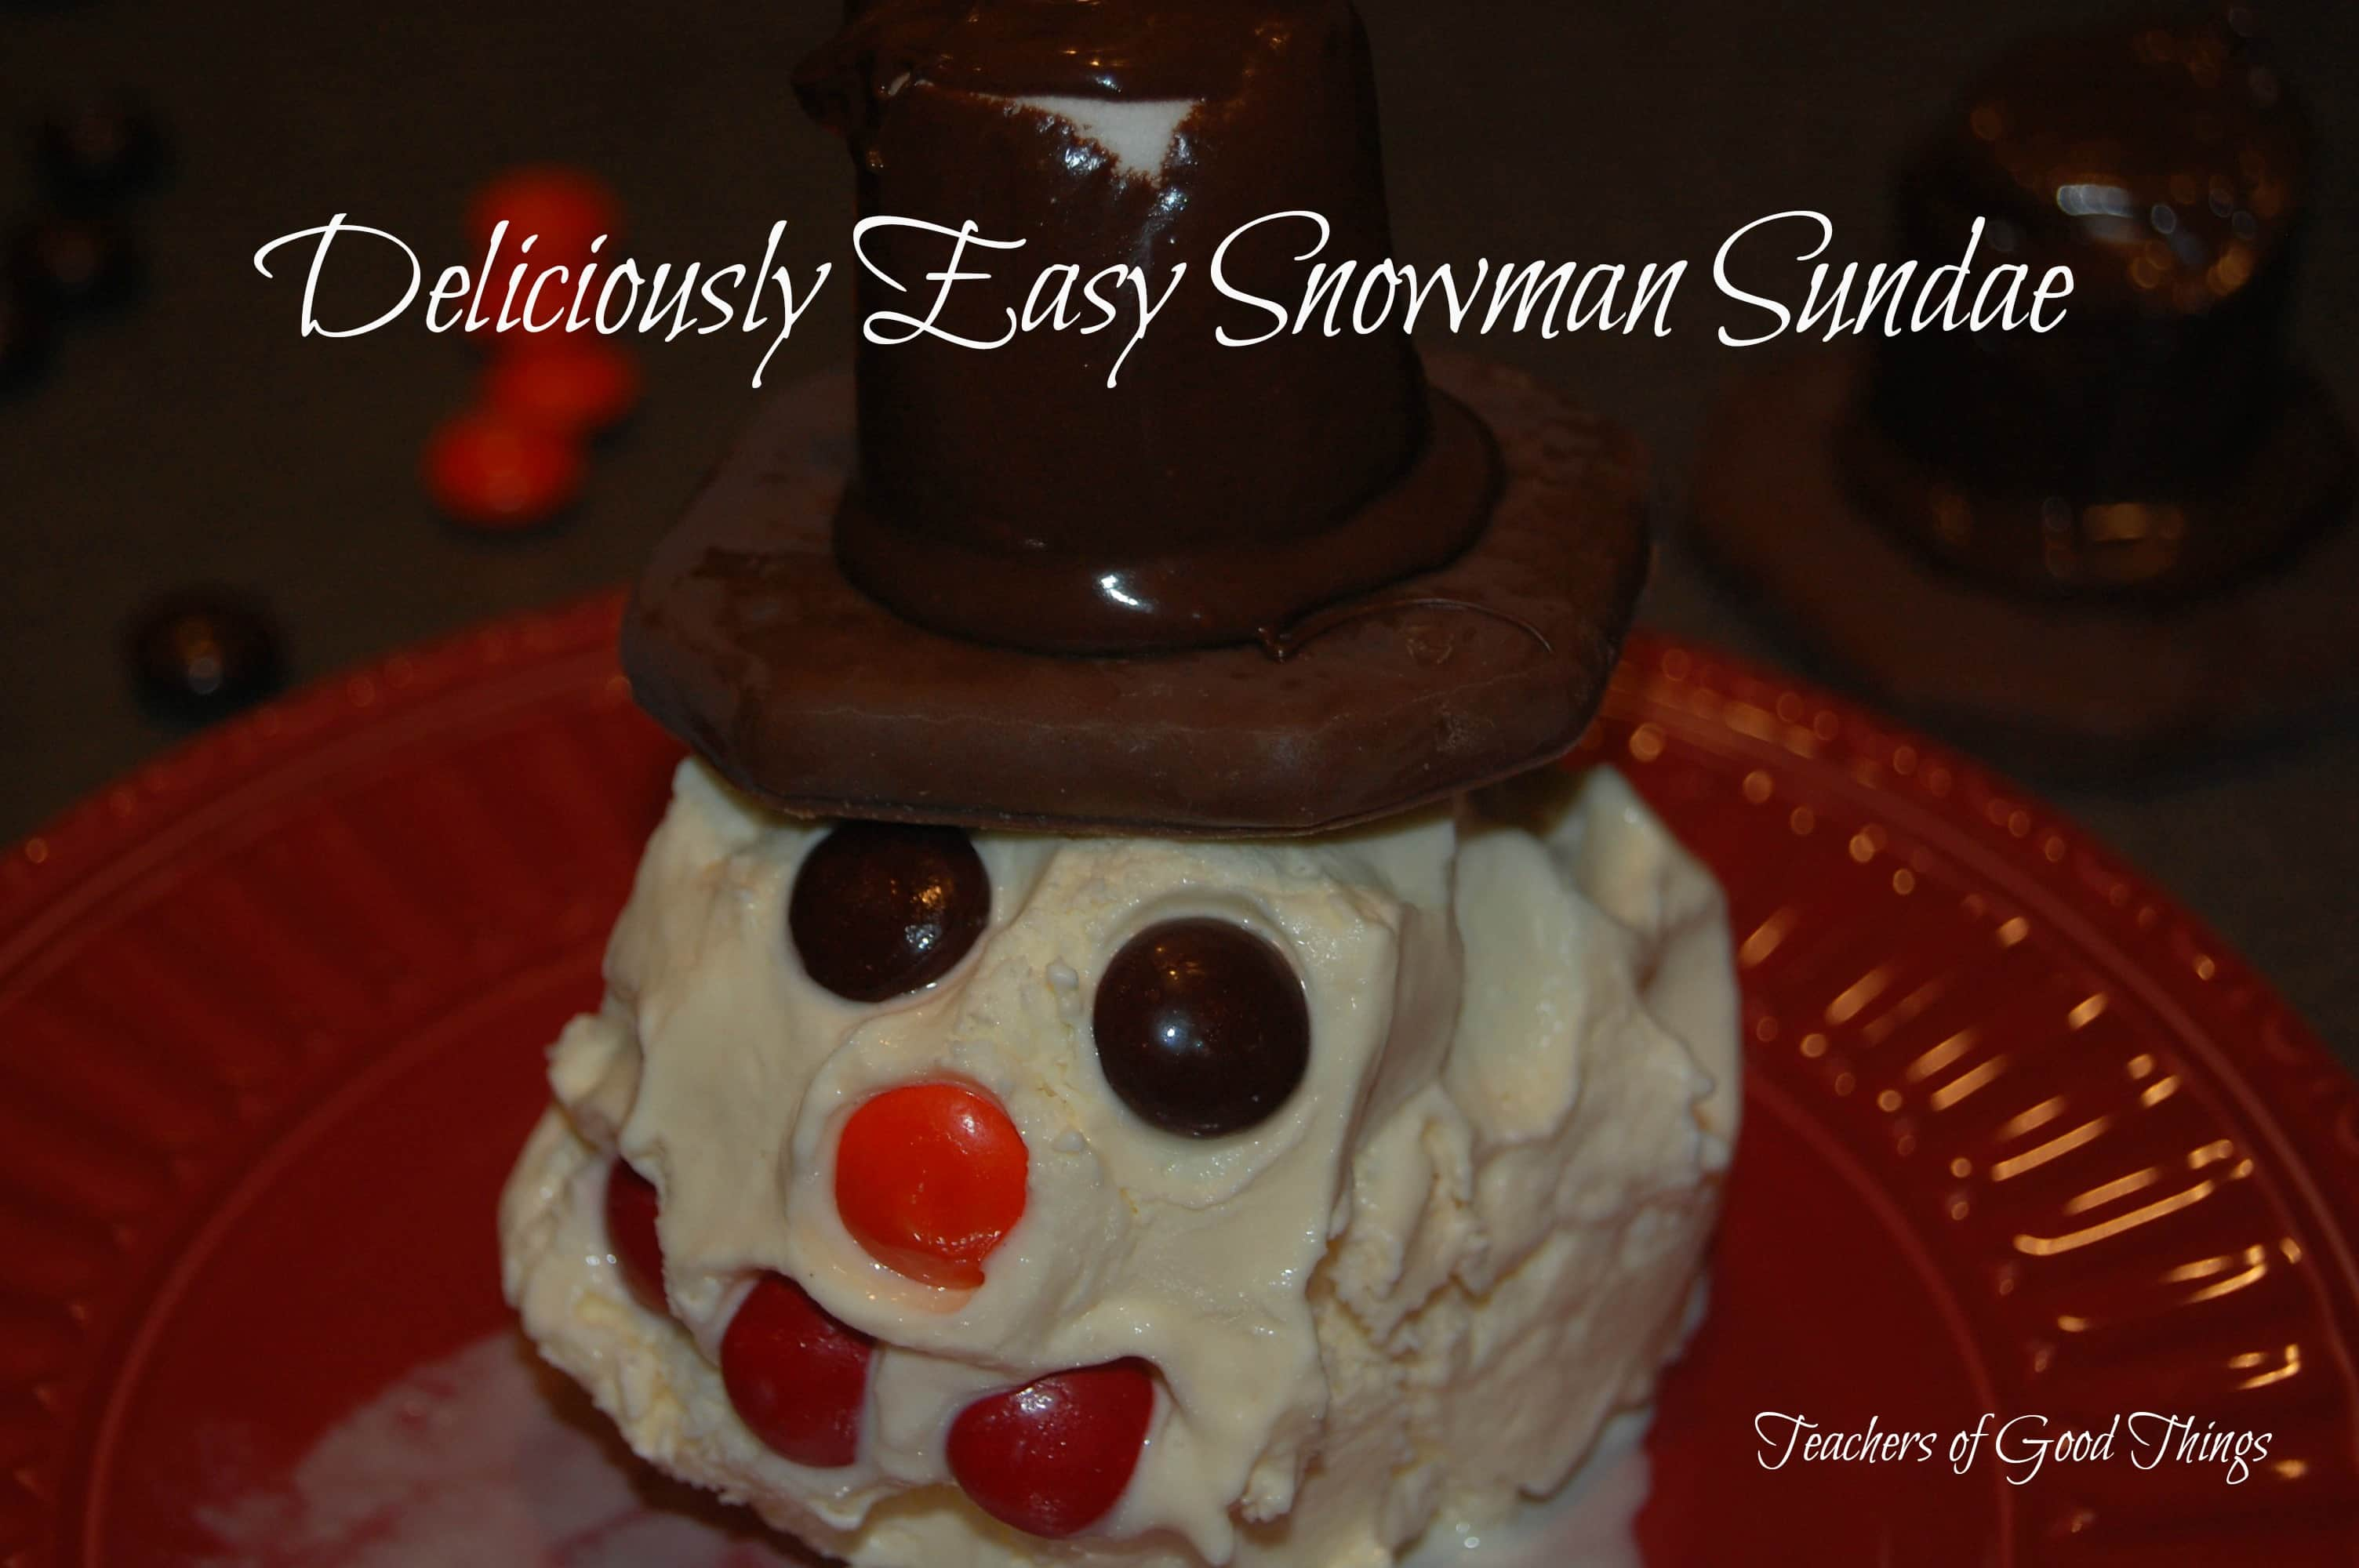 Deliciously Easy Snowman Sundae